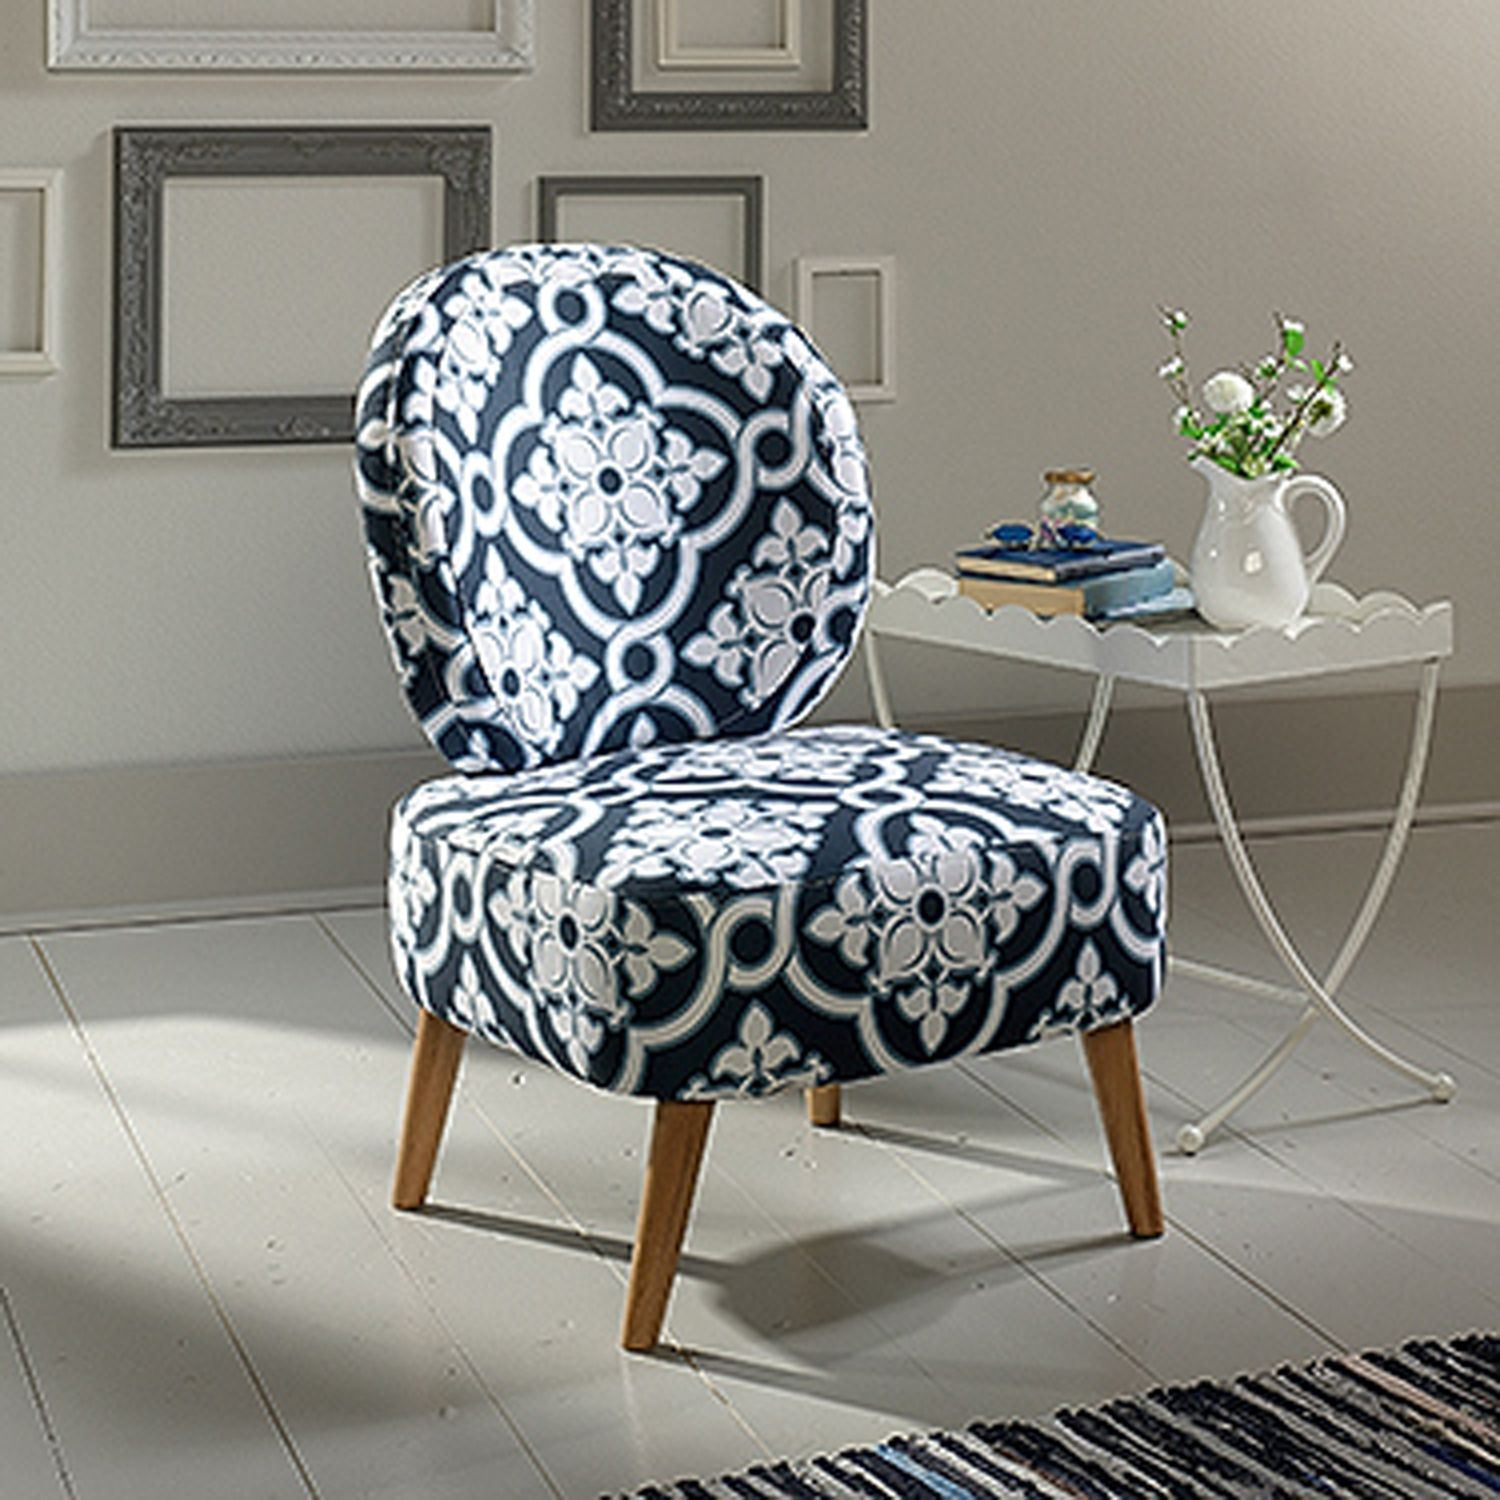 Stupendous Eden Rue Maya Accent Chair Indigo Arabesque D Gmtry Best Dining Table And Chair Ideas Images Gmtryco